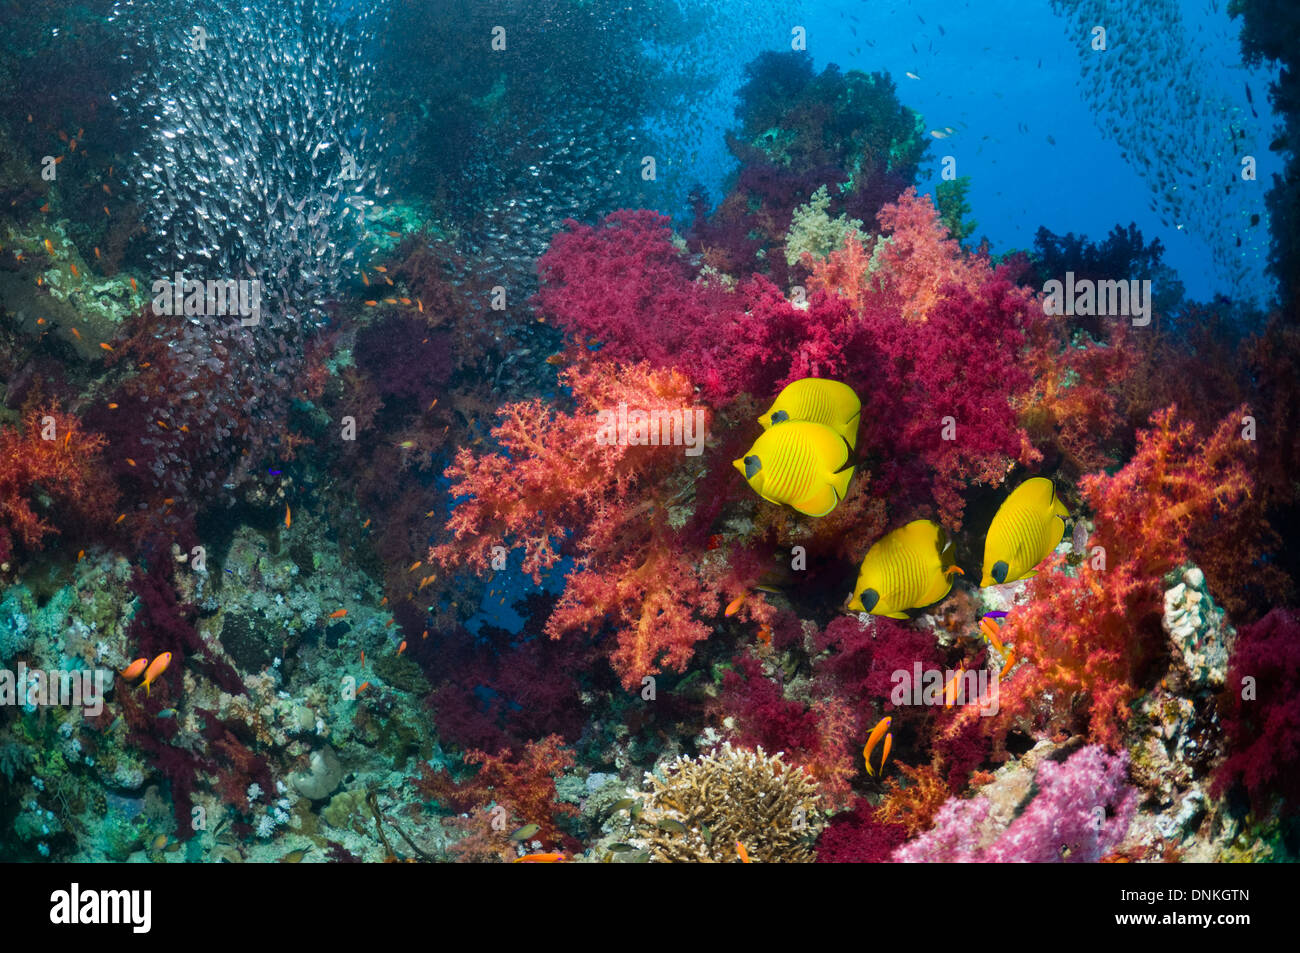 Coral reef scenery with Golden butterflyfish - Stock Image